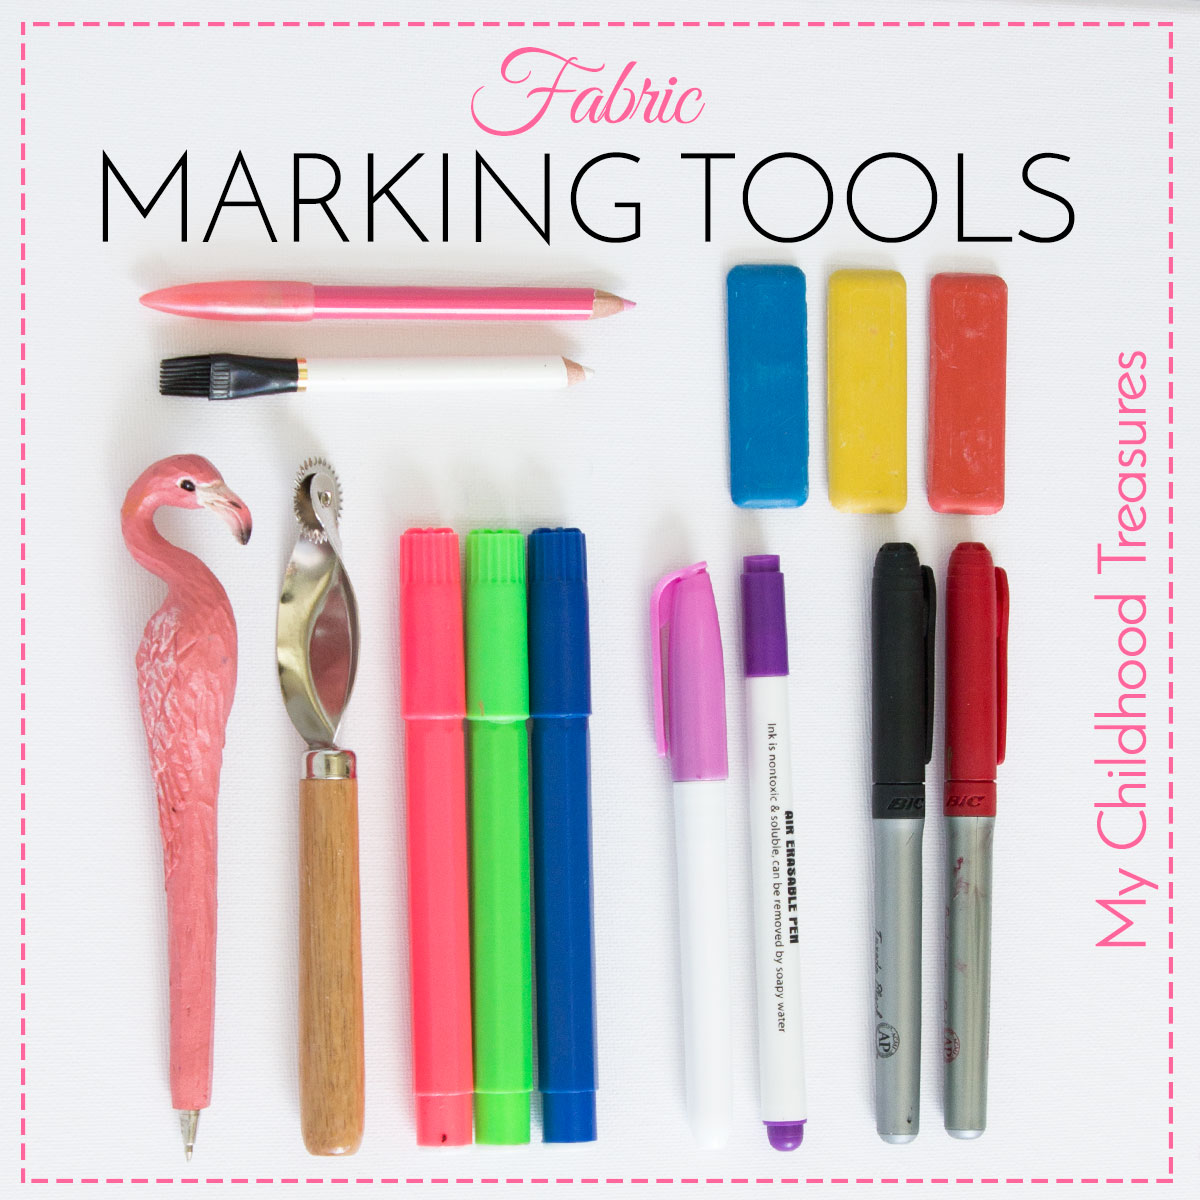 Fabric Marking Tools 6 Best Tools For Marking Fabric